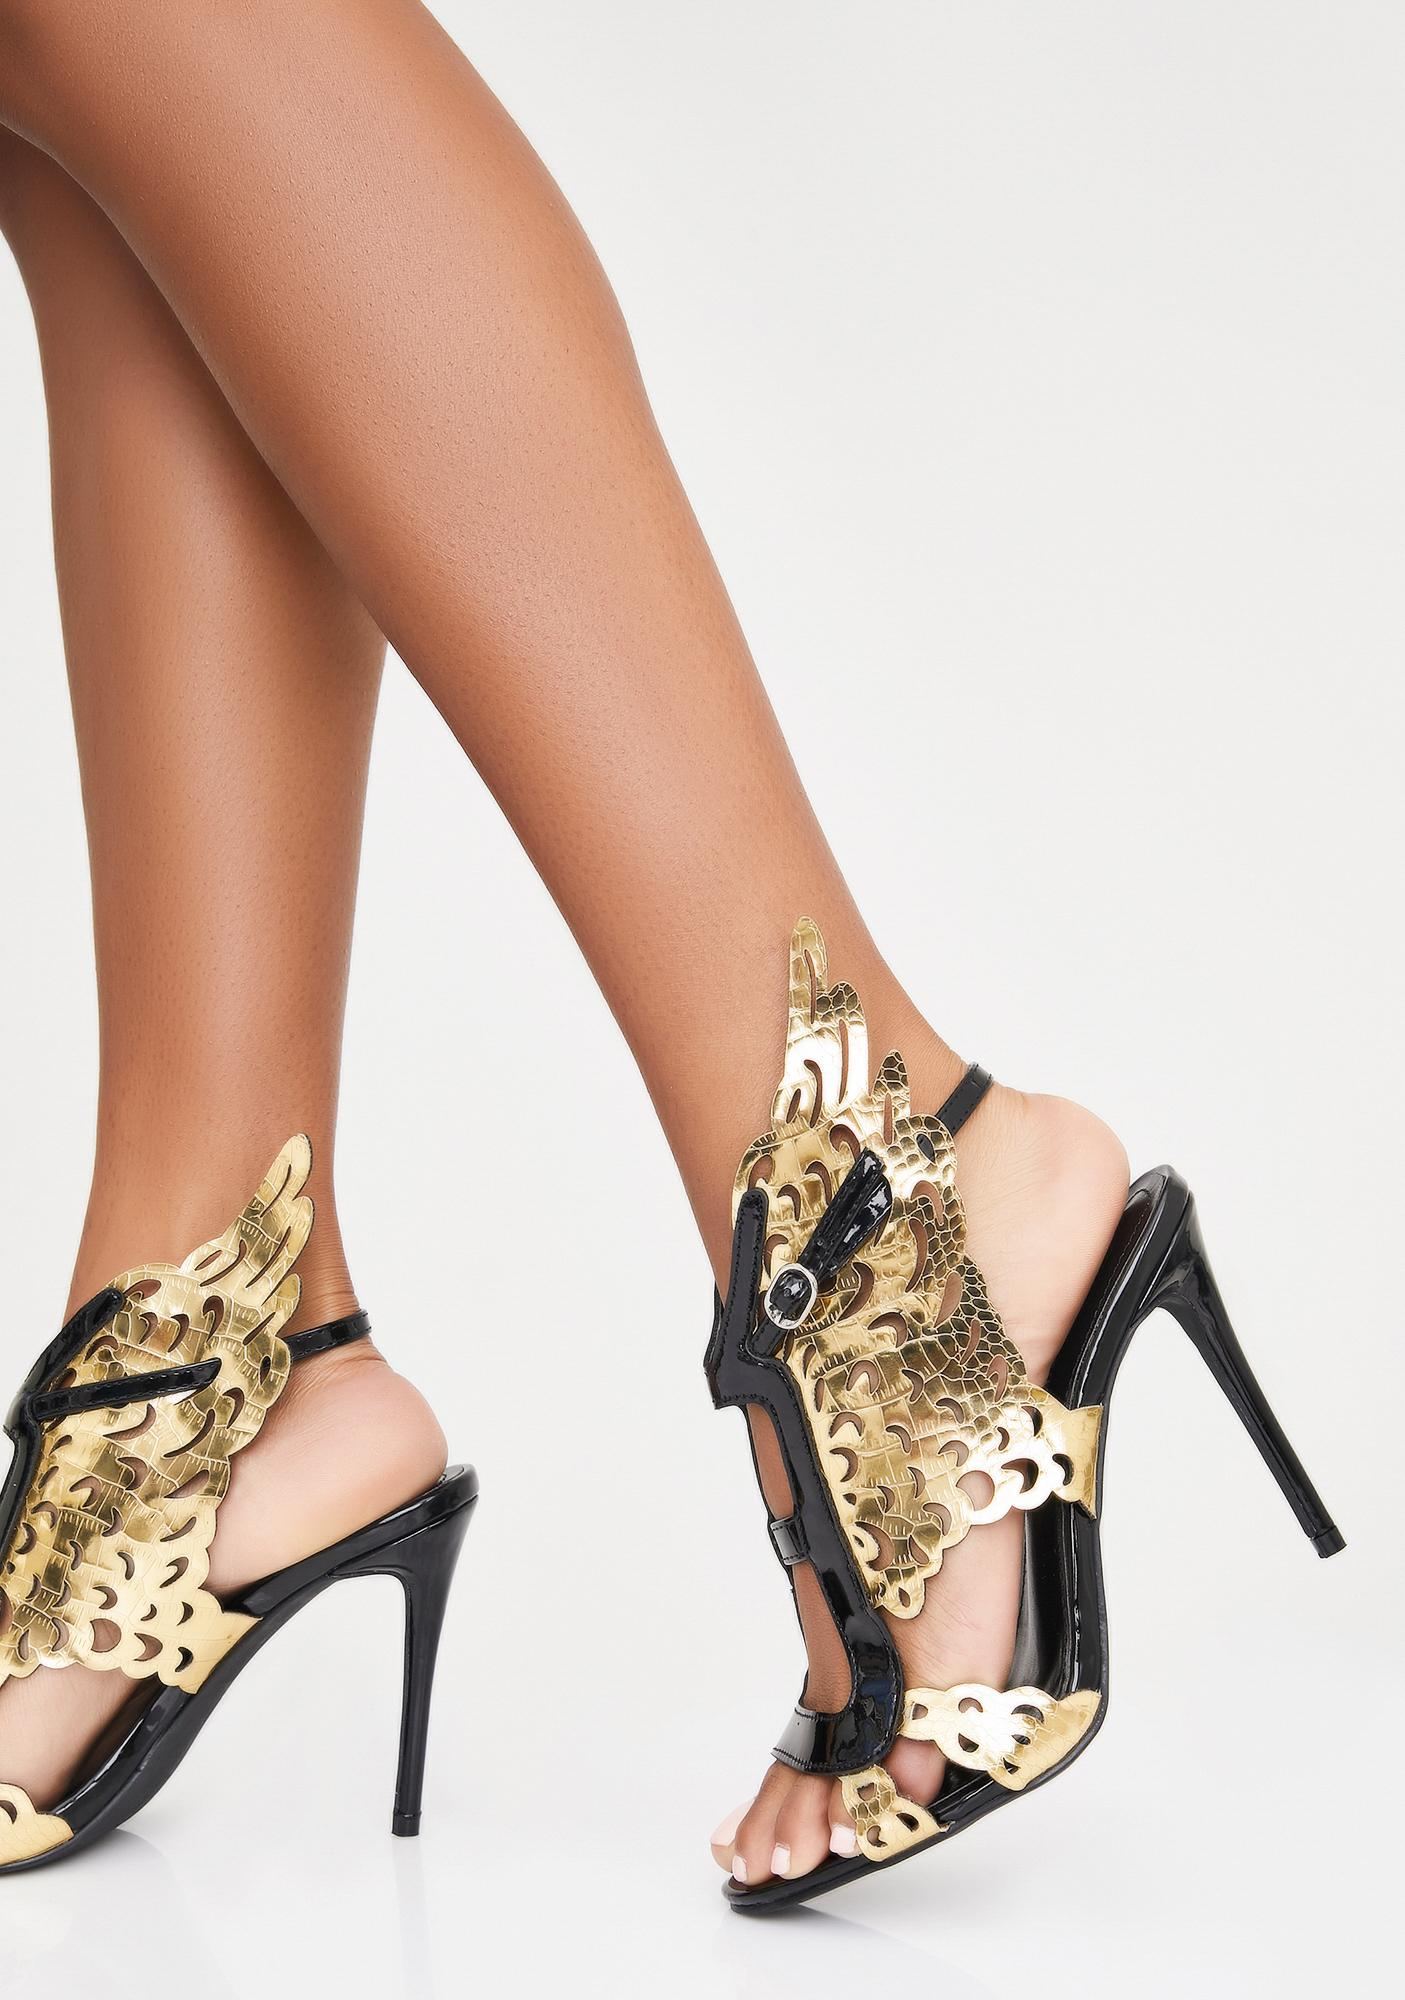 Like Angels Stiletto Heels